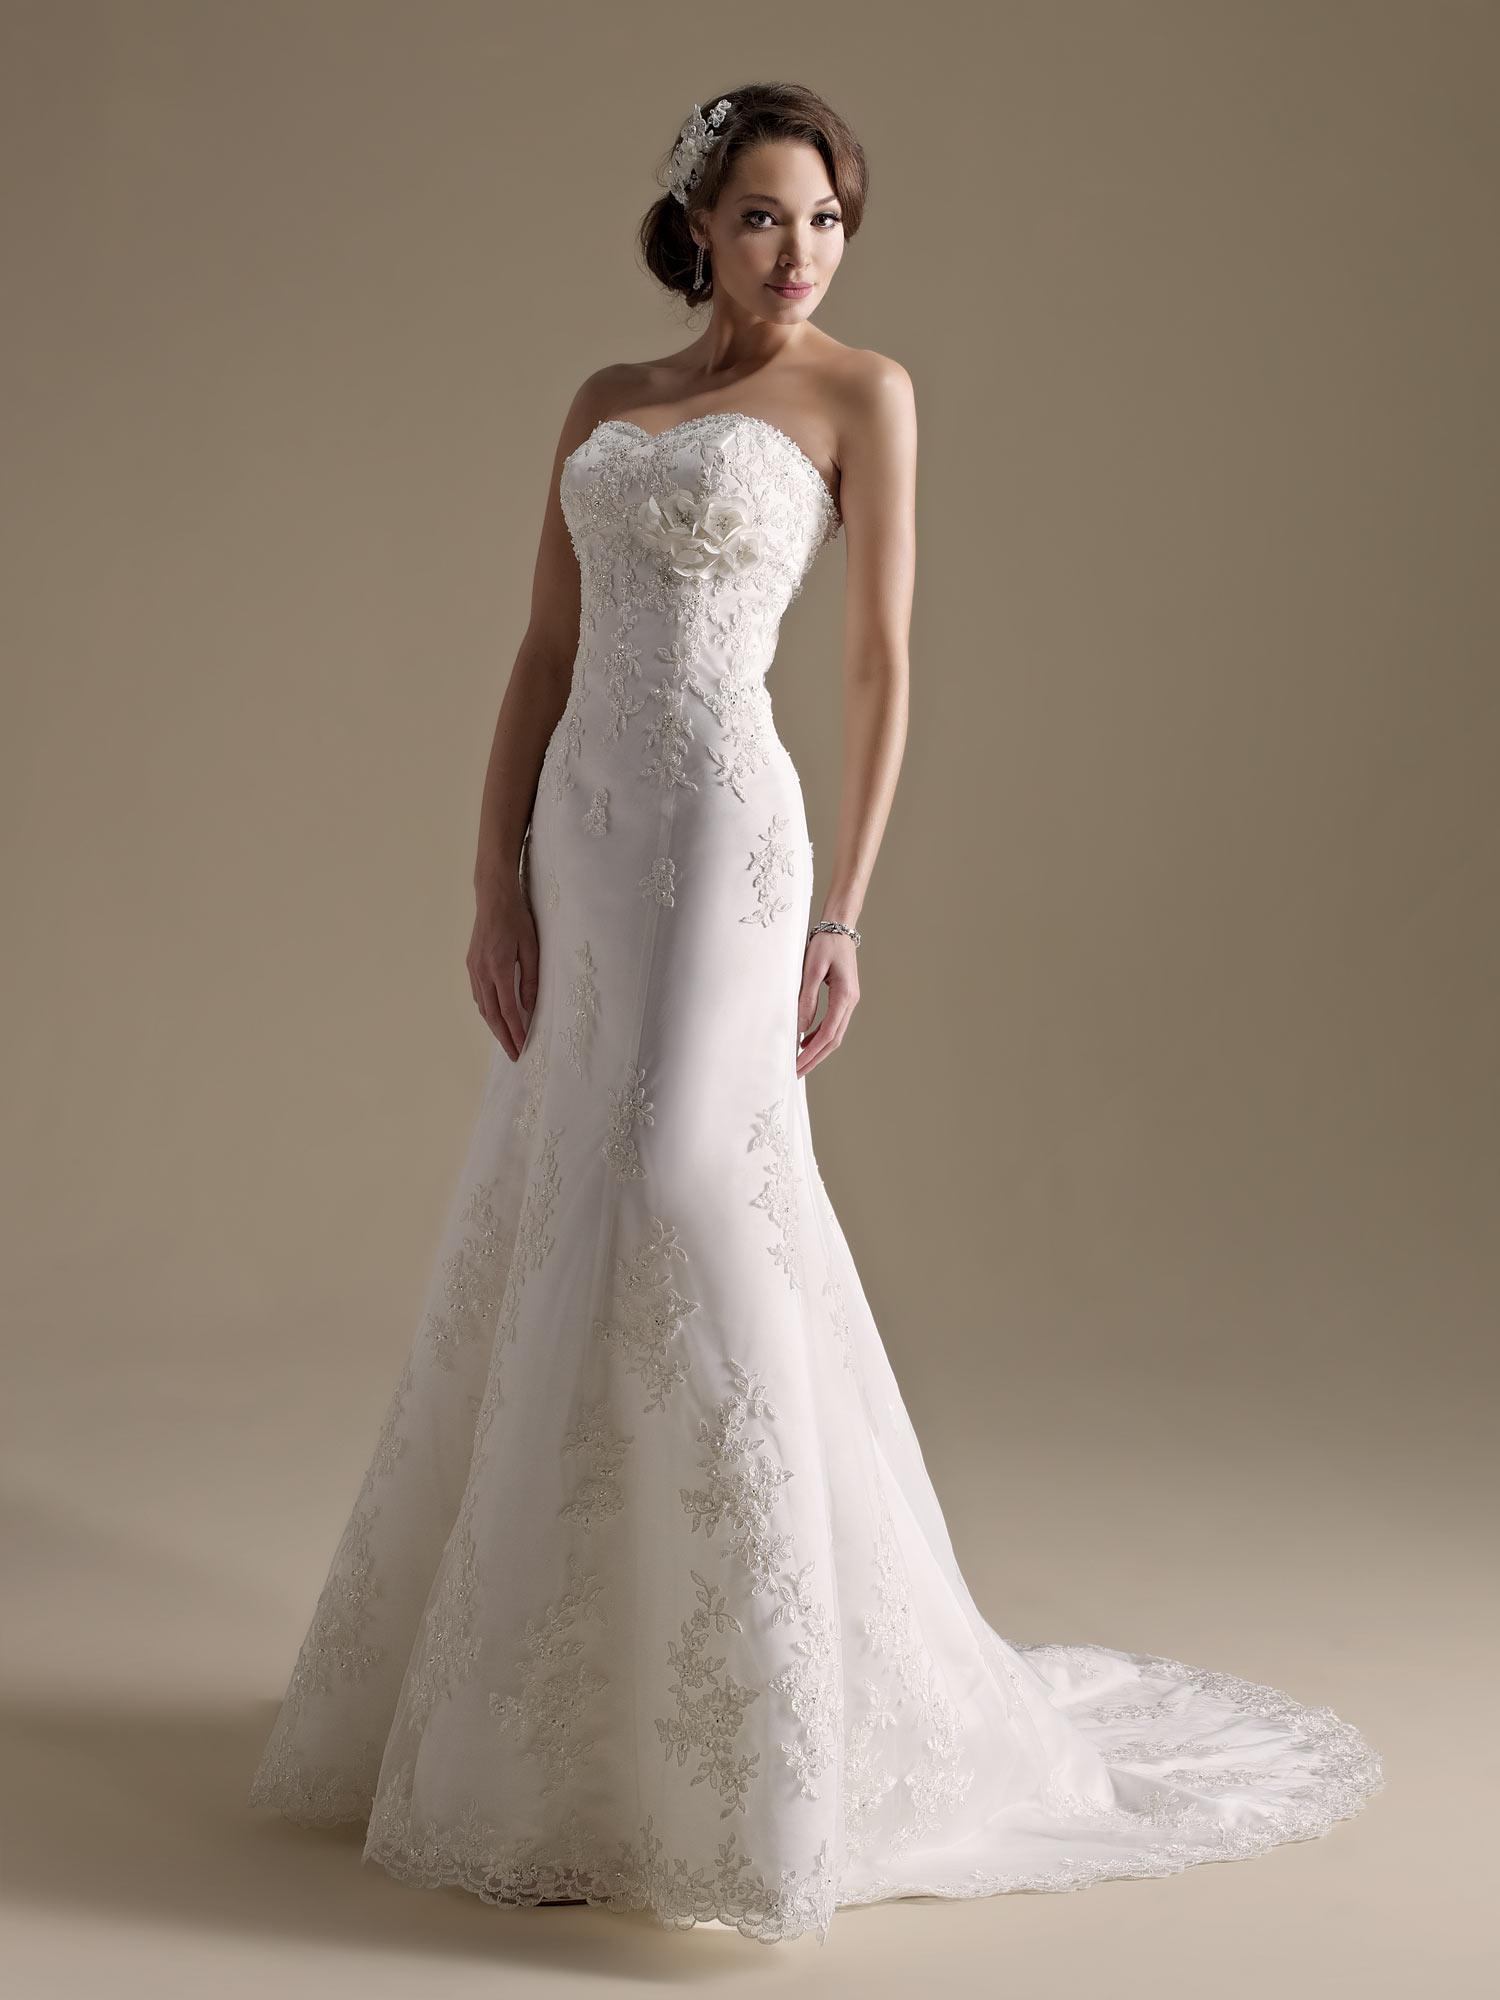 Discount kenneth winston 1475 a line wedding dresses sweetheart discount kenneth winston 1475 a line wedding dresses sweetheart lace beaded sparkle hand made flower bridal dresses court train lace up bridal gowns ombrellifo Gallery